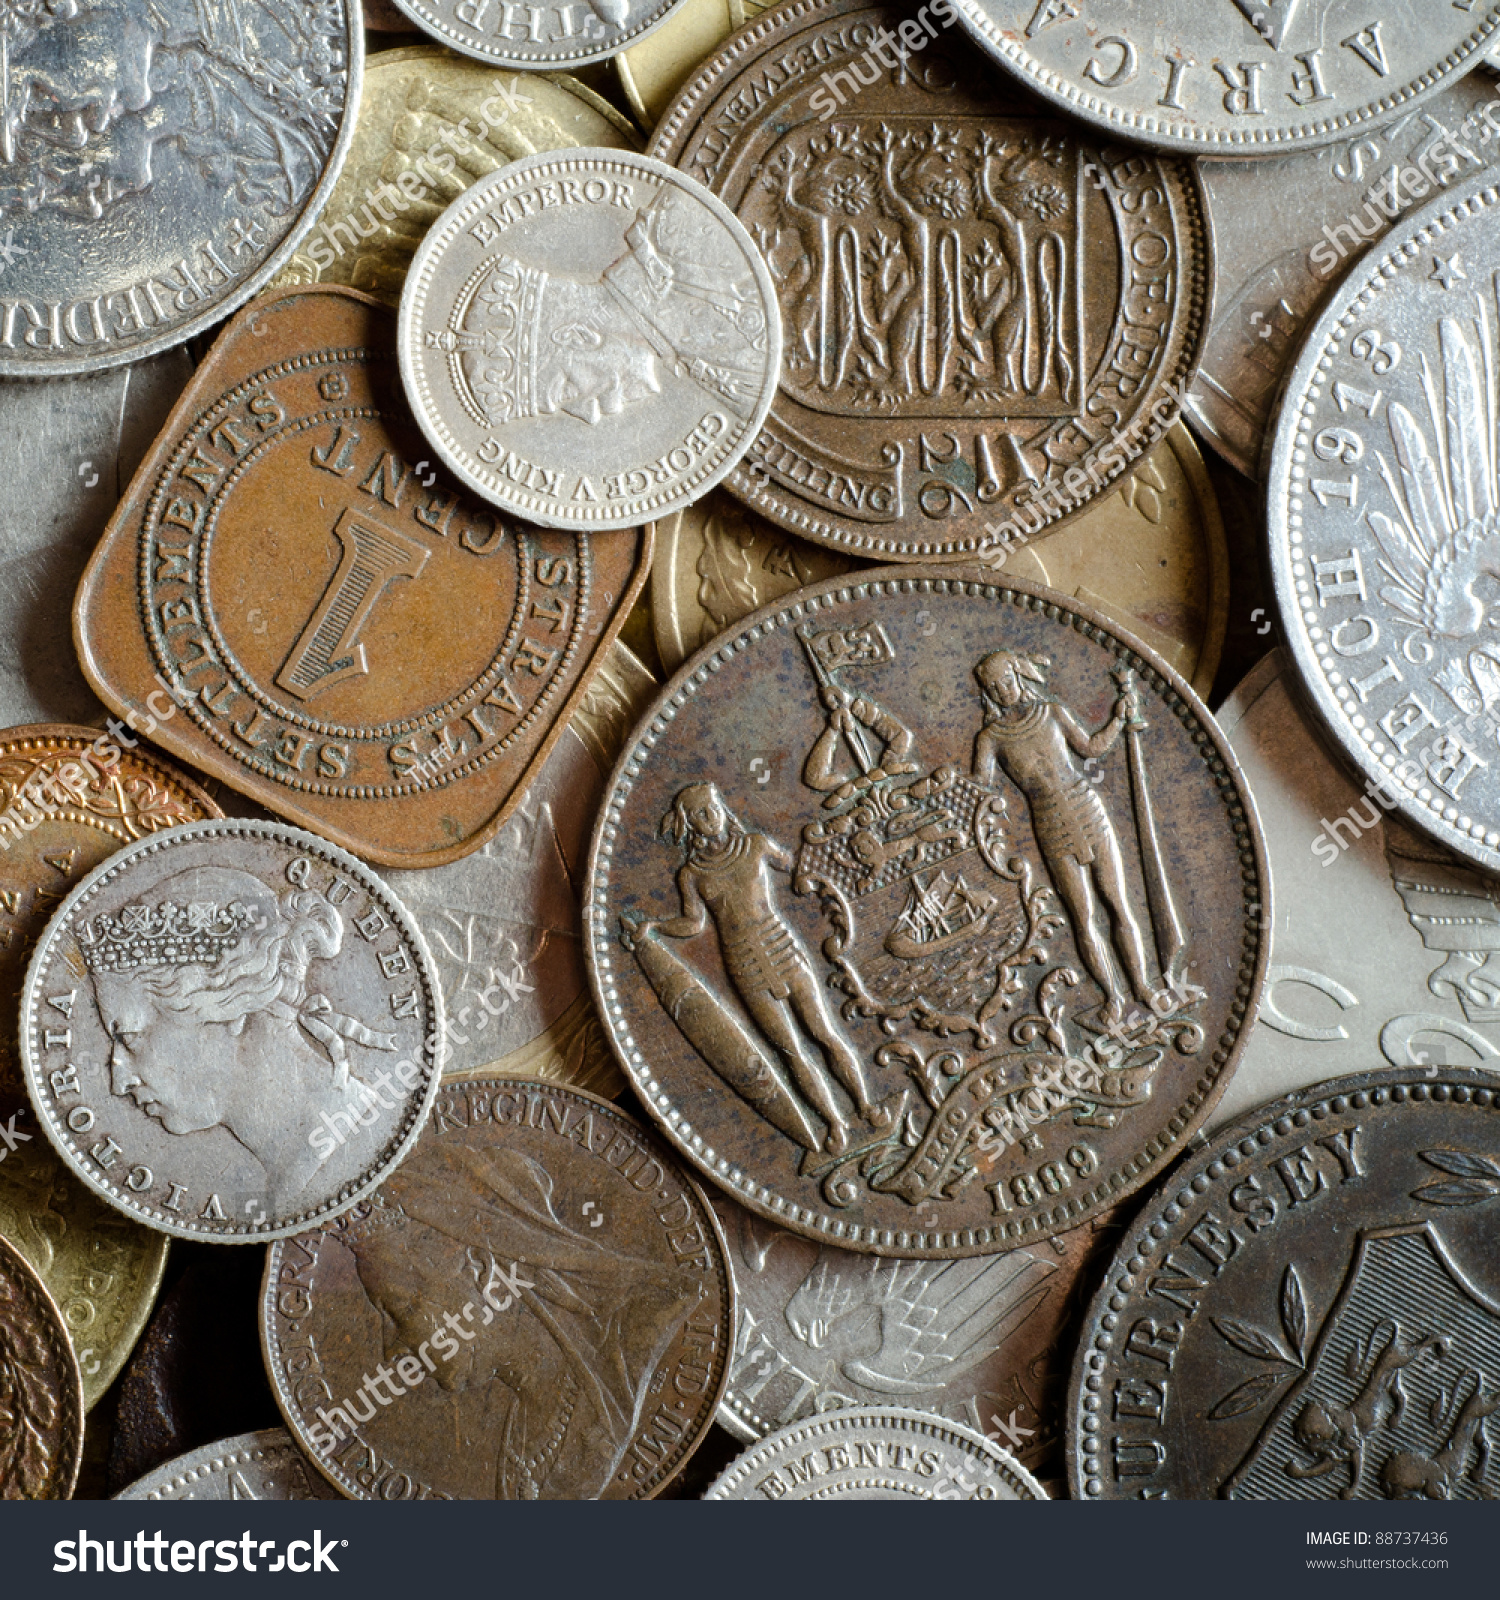 old coins stock image - photo #18